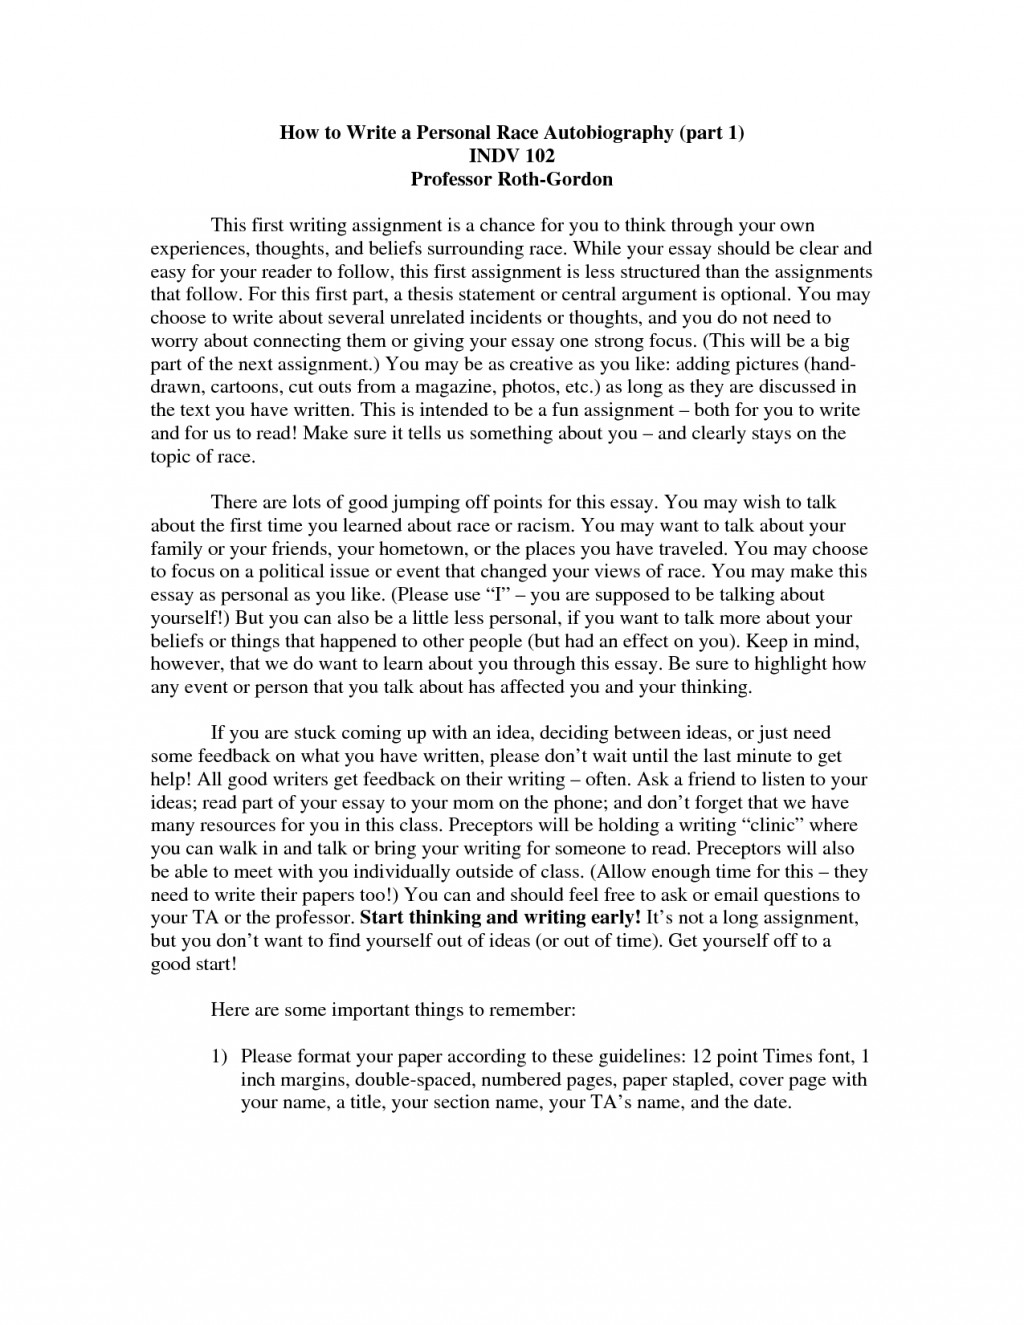 016 How To Write An Autobiographical Essay Autobiography About Yourself For Scholarship College Start Biographicals On Make Narrative Myself Incredible Graduate School Example A Job Large